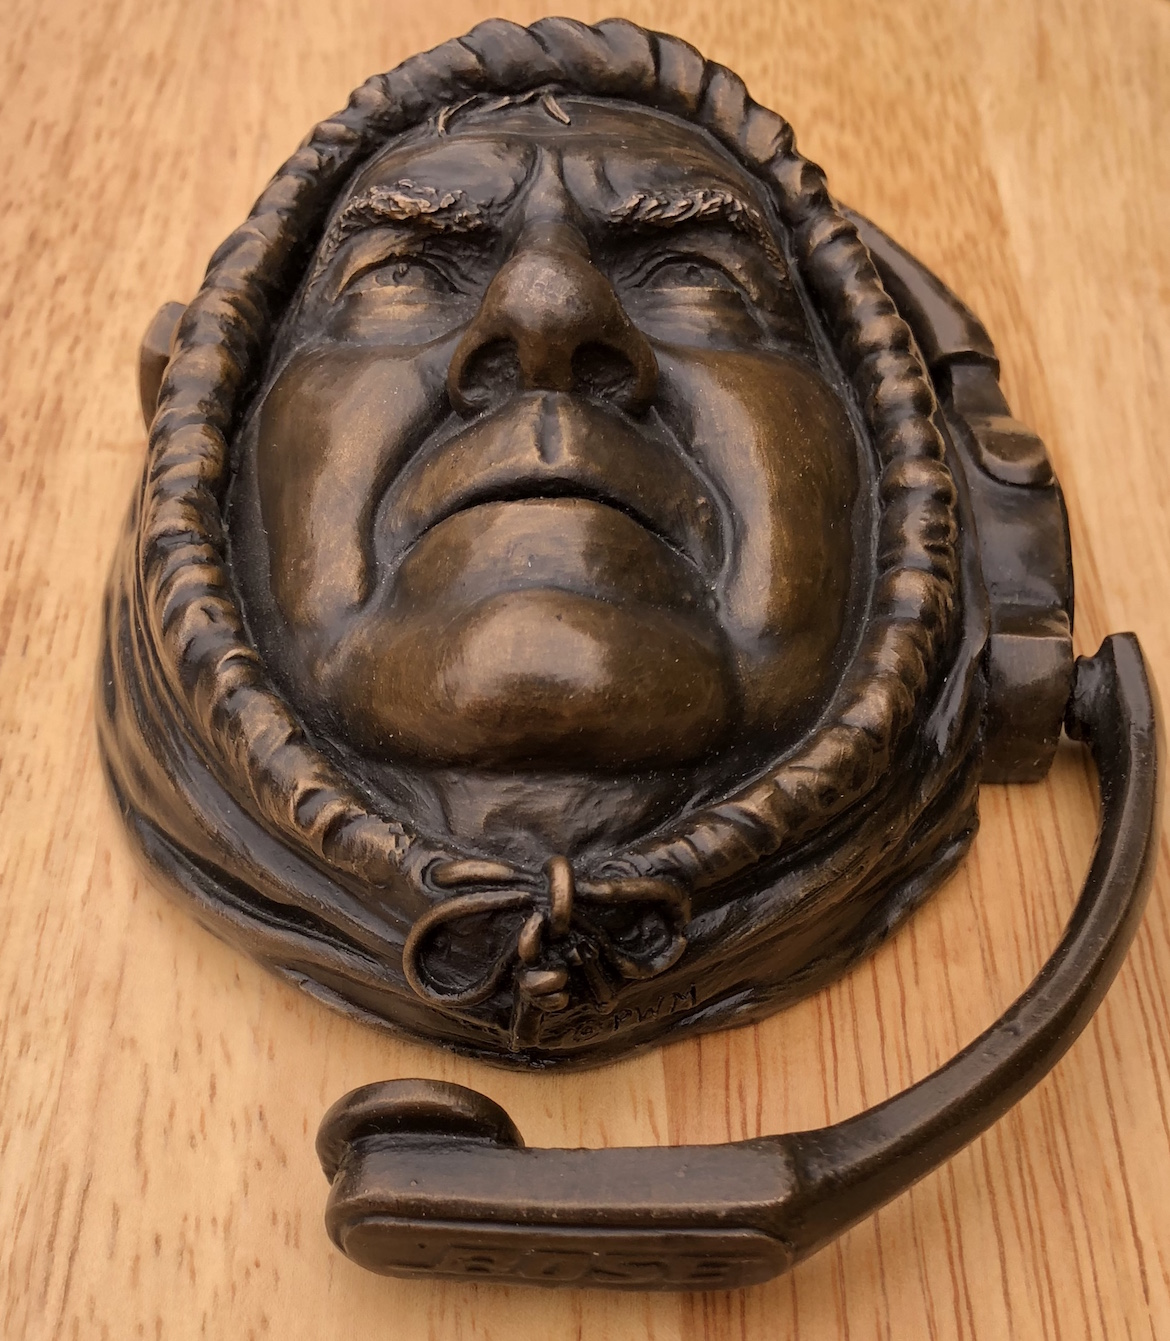 ... Palmer Murphy\u0027s Bill Belichick door knocker. (Courtesy of the artist) & Welcome Guests To Your Home With \u2026 A Bill Belichick Door Knocker ...